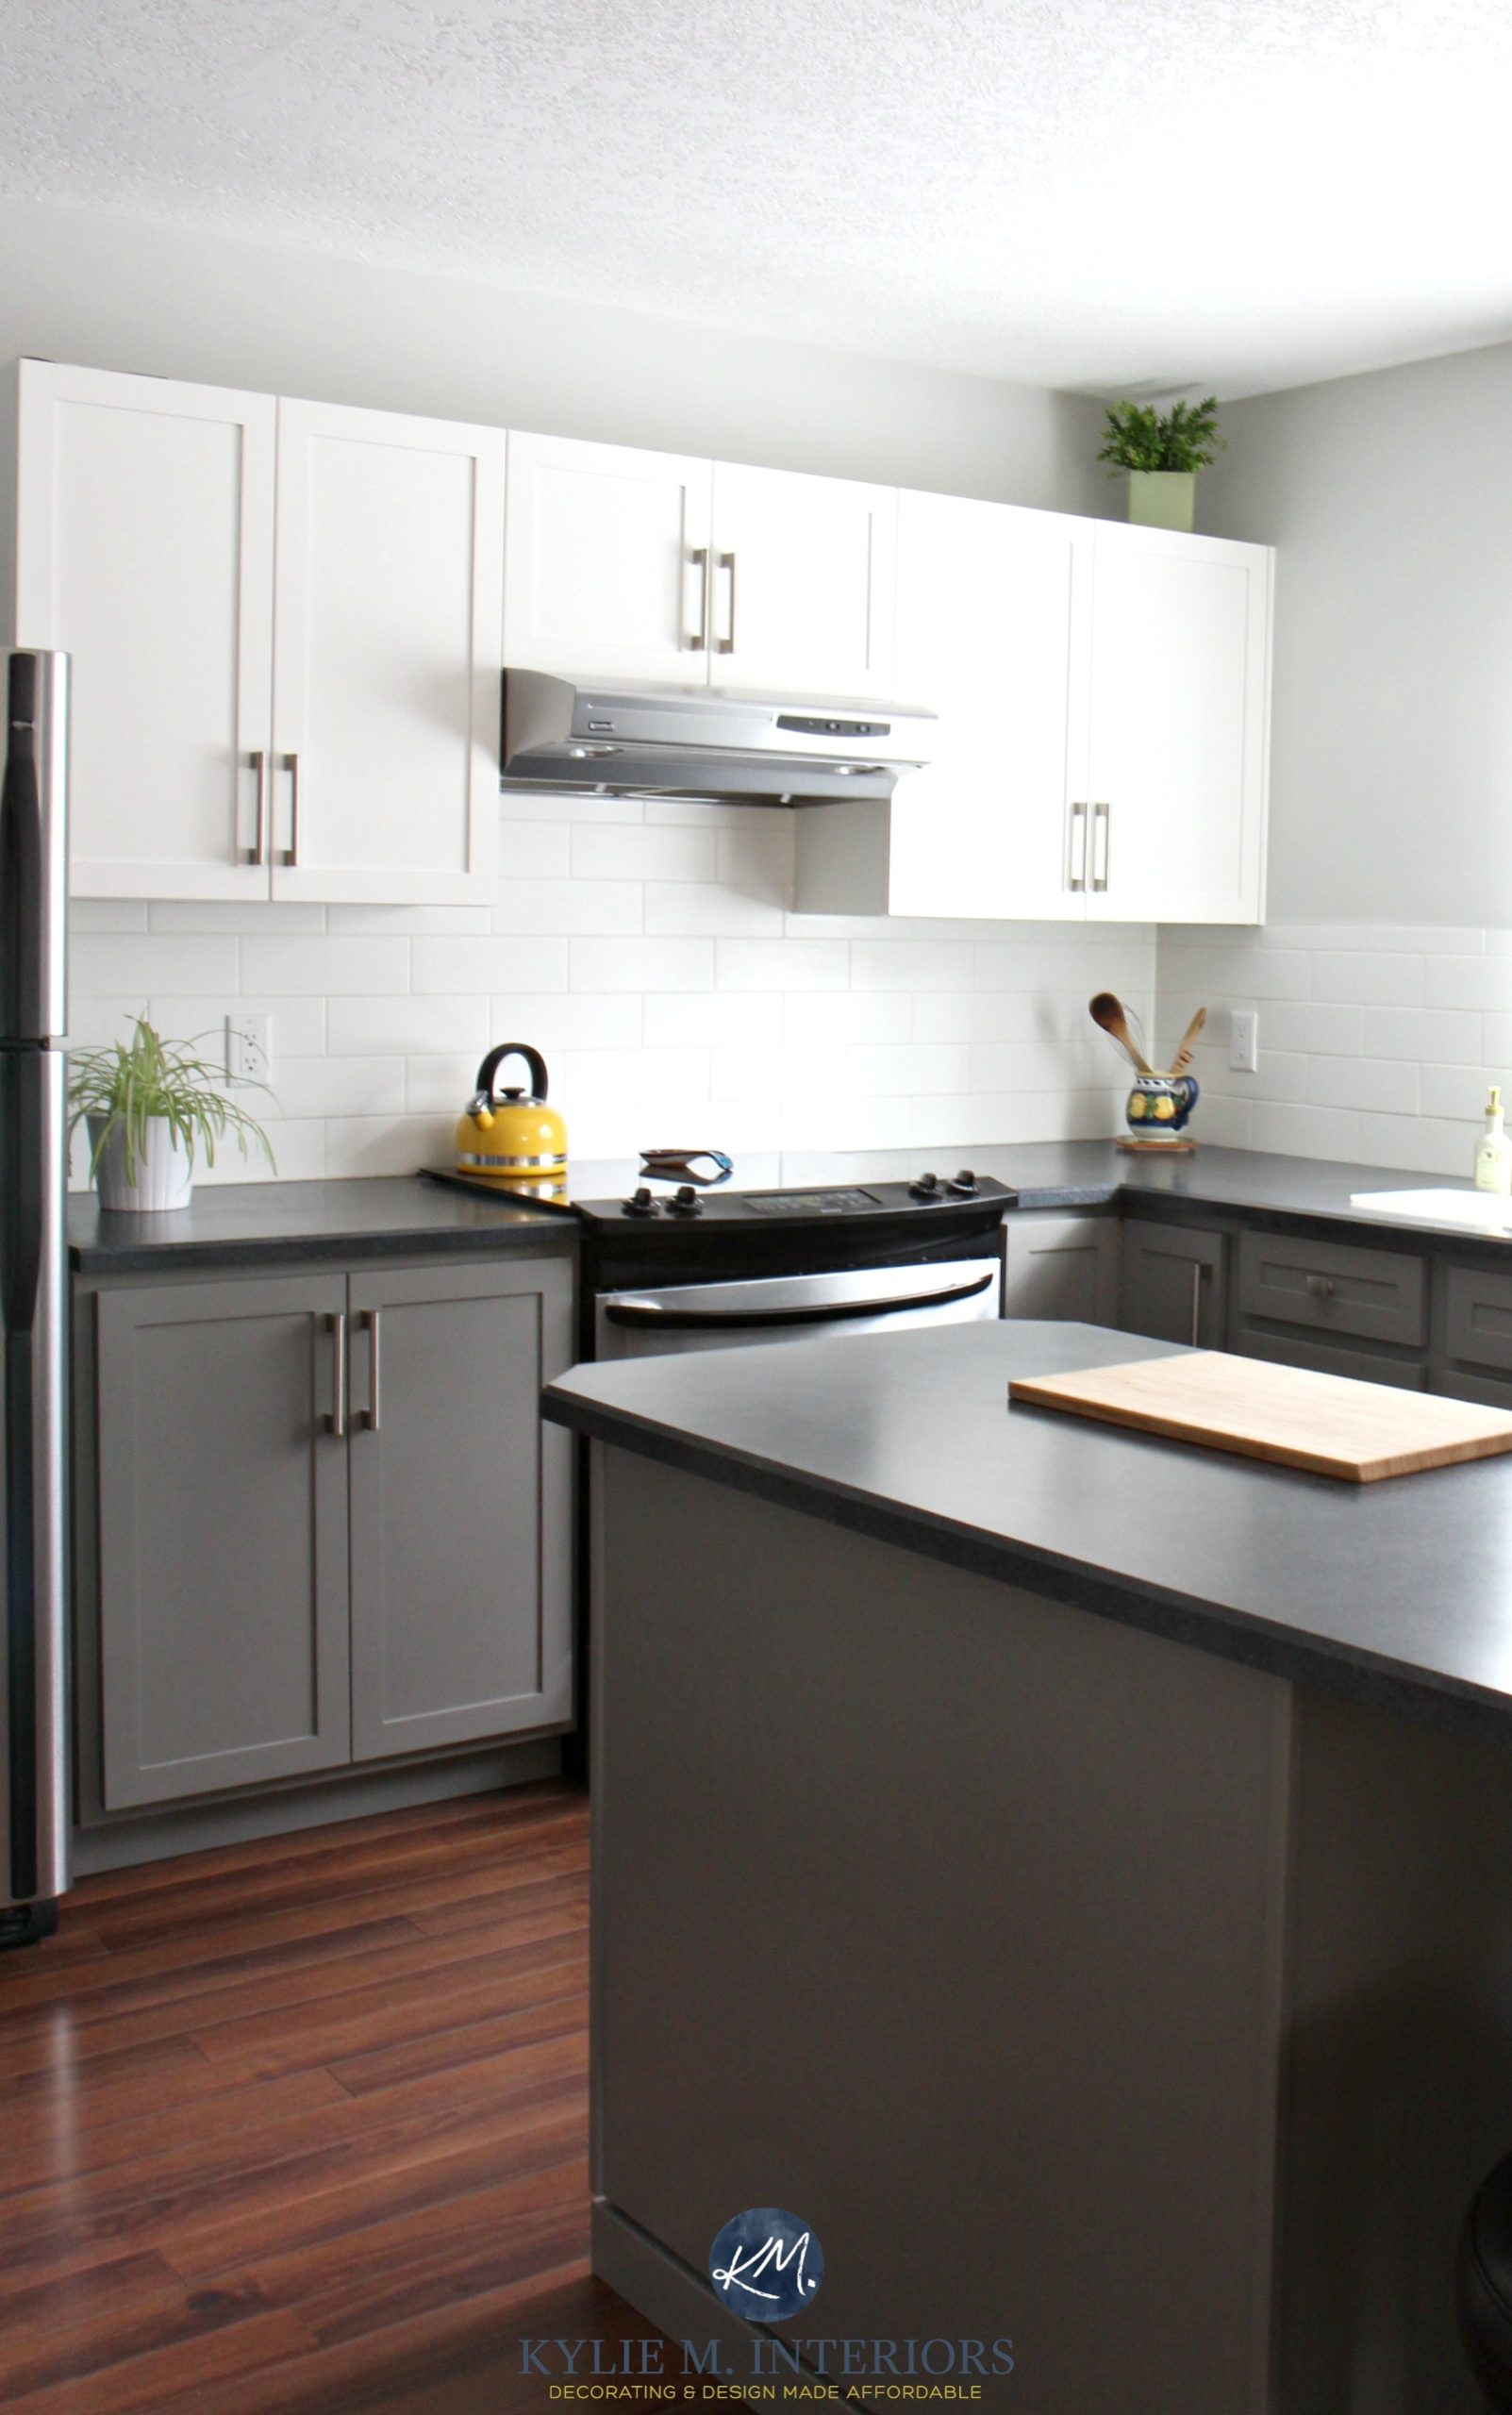 How To Update Laminate Kitchen Cabinets Painted Kitchen Cabinets With White And Benjamin Moore